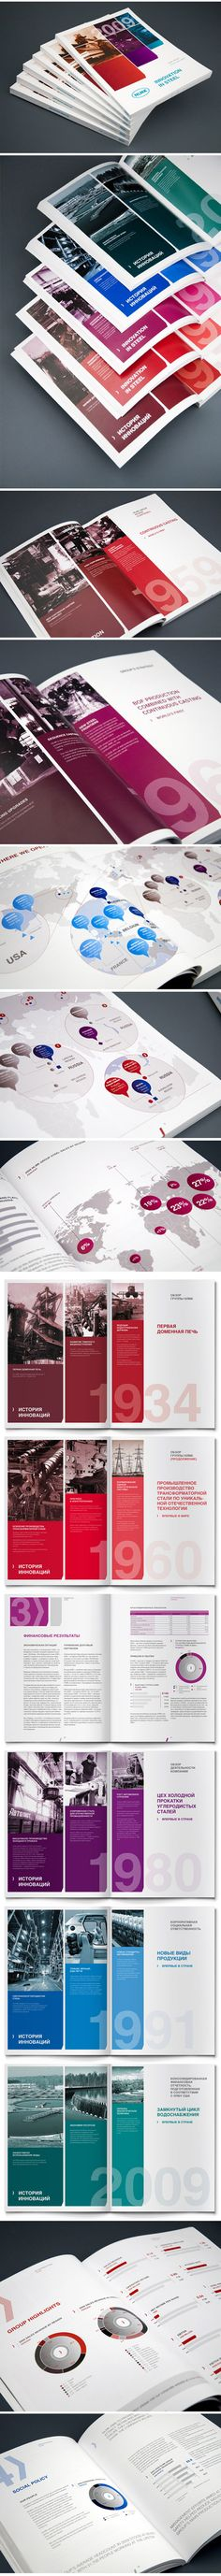 Good layout and use of colour. Annual report NLMK by Andrew Gorkovenko, via Behance Graphic Design Print, Graphic Design Layouts, Graphic Design Typography, Graphic Design Inspiration, Layout Design, Design Posters, Design Brochure, Booklet Design, Branding Design